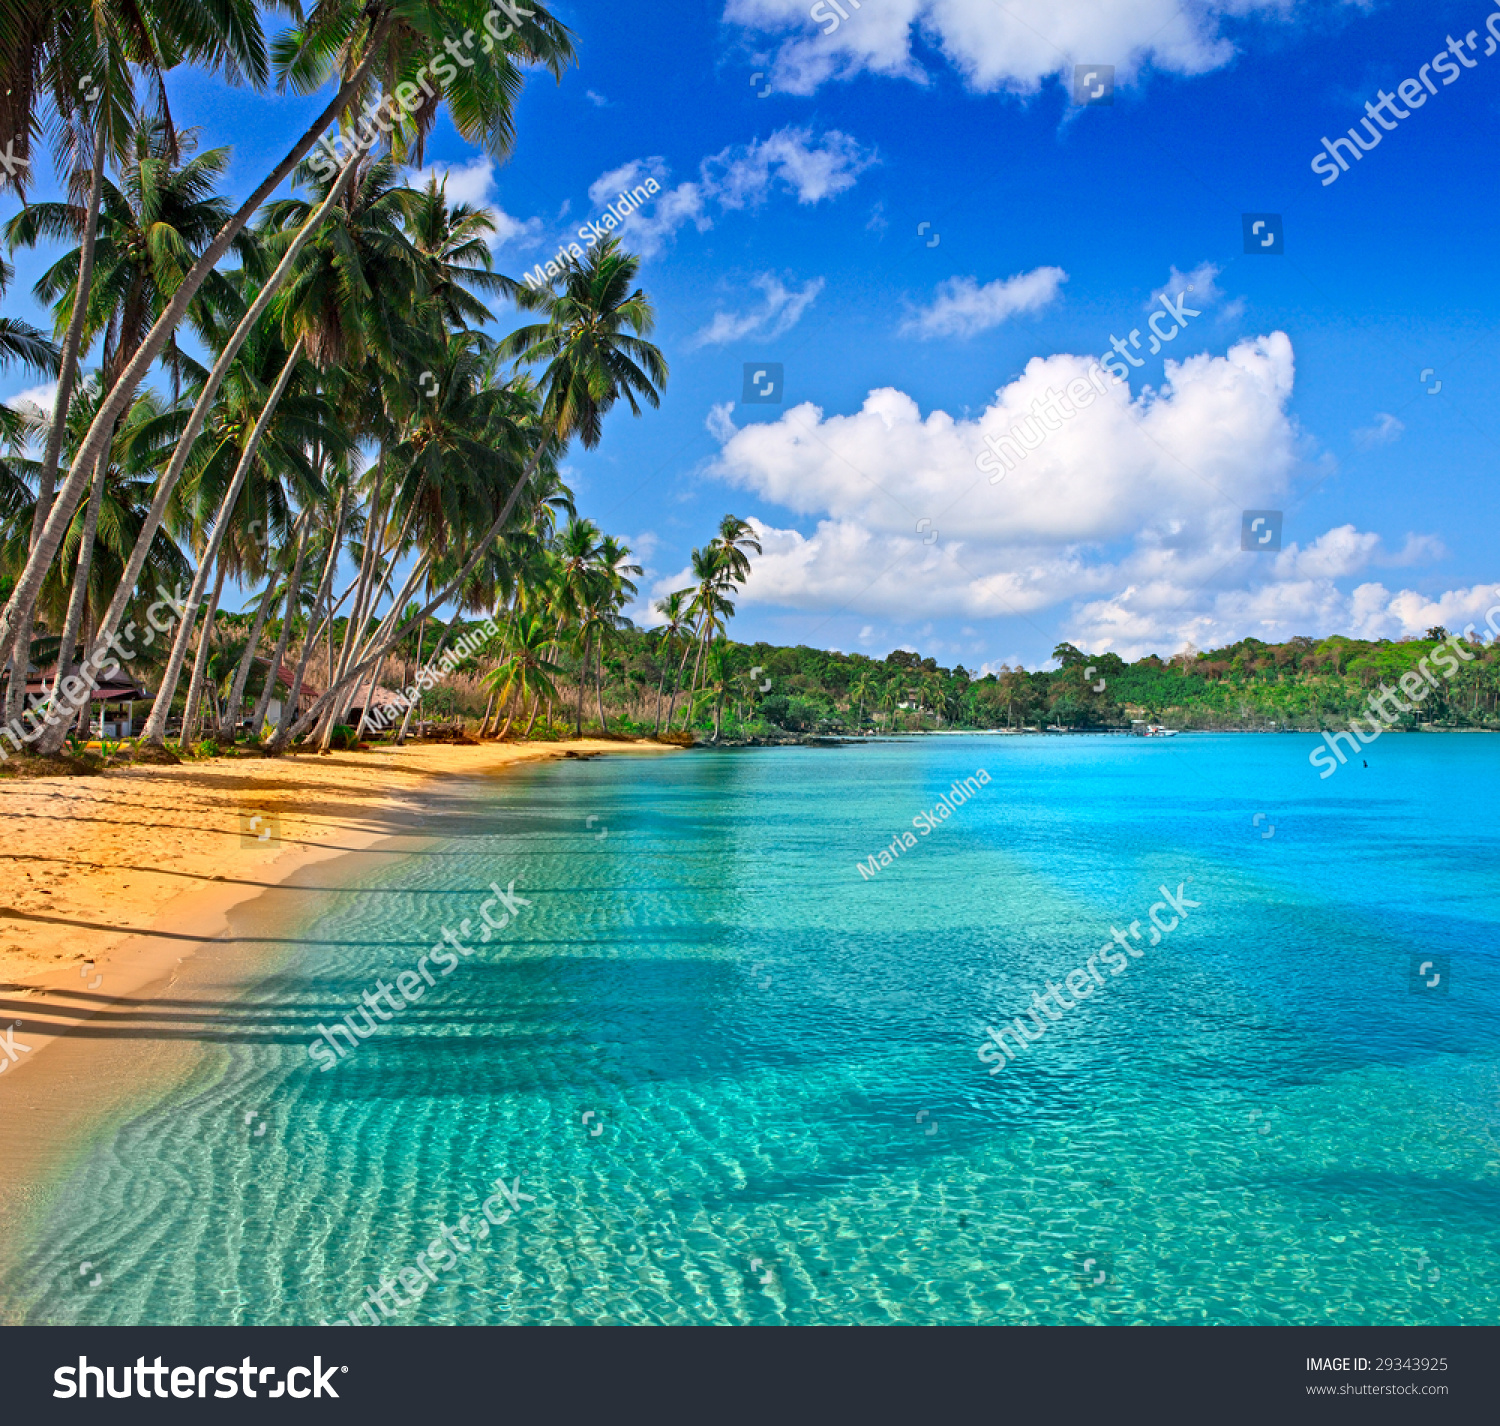 Exotic Beach: Paradise Nature, Sea Water, Summer And Hotel House On The